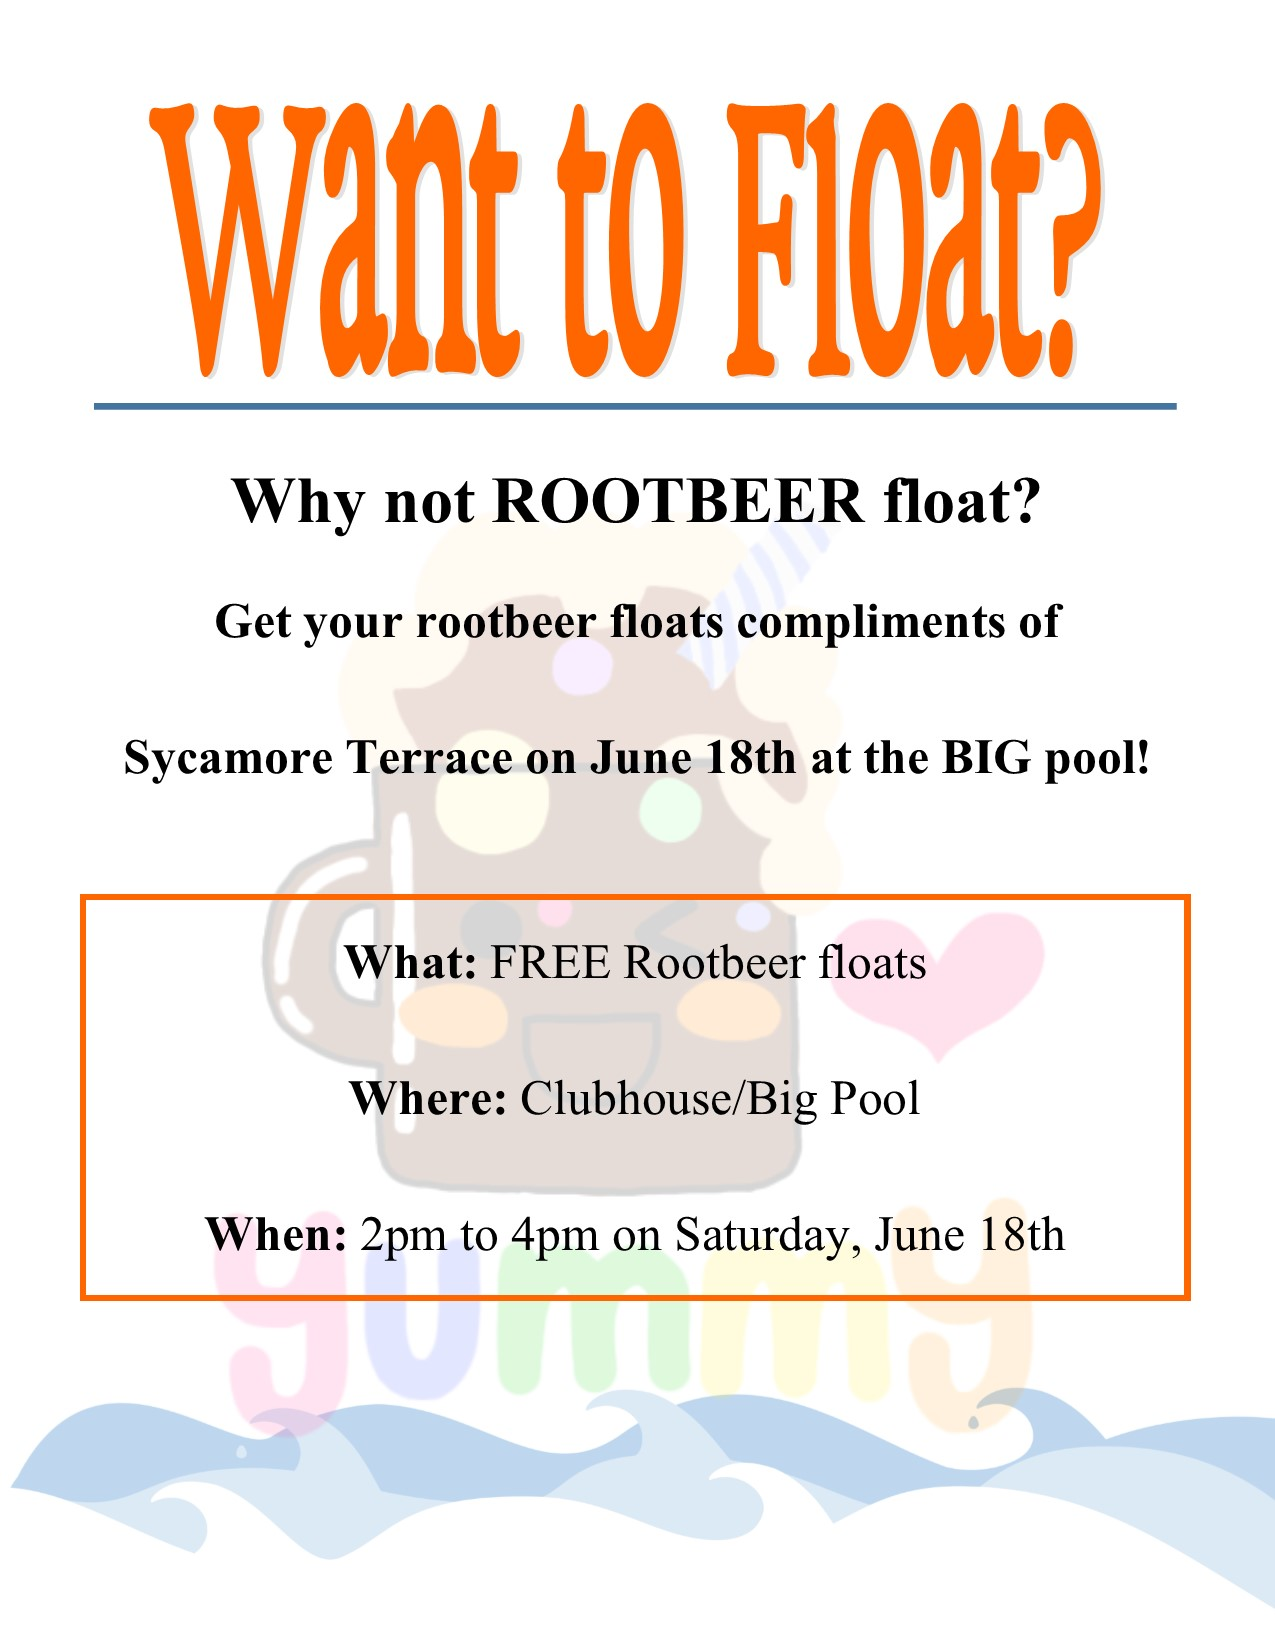 Root beer floats by pool 5-16